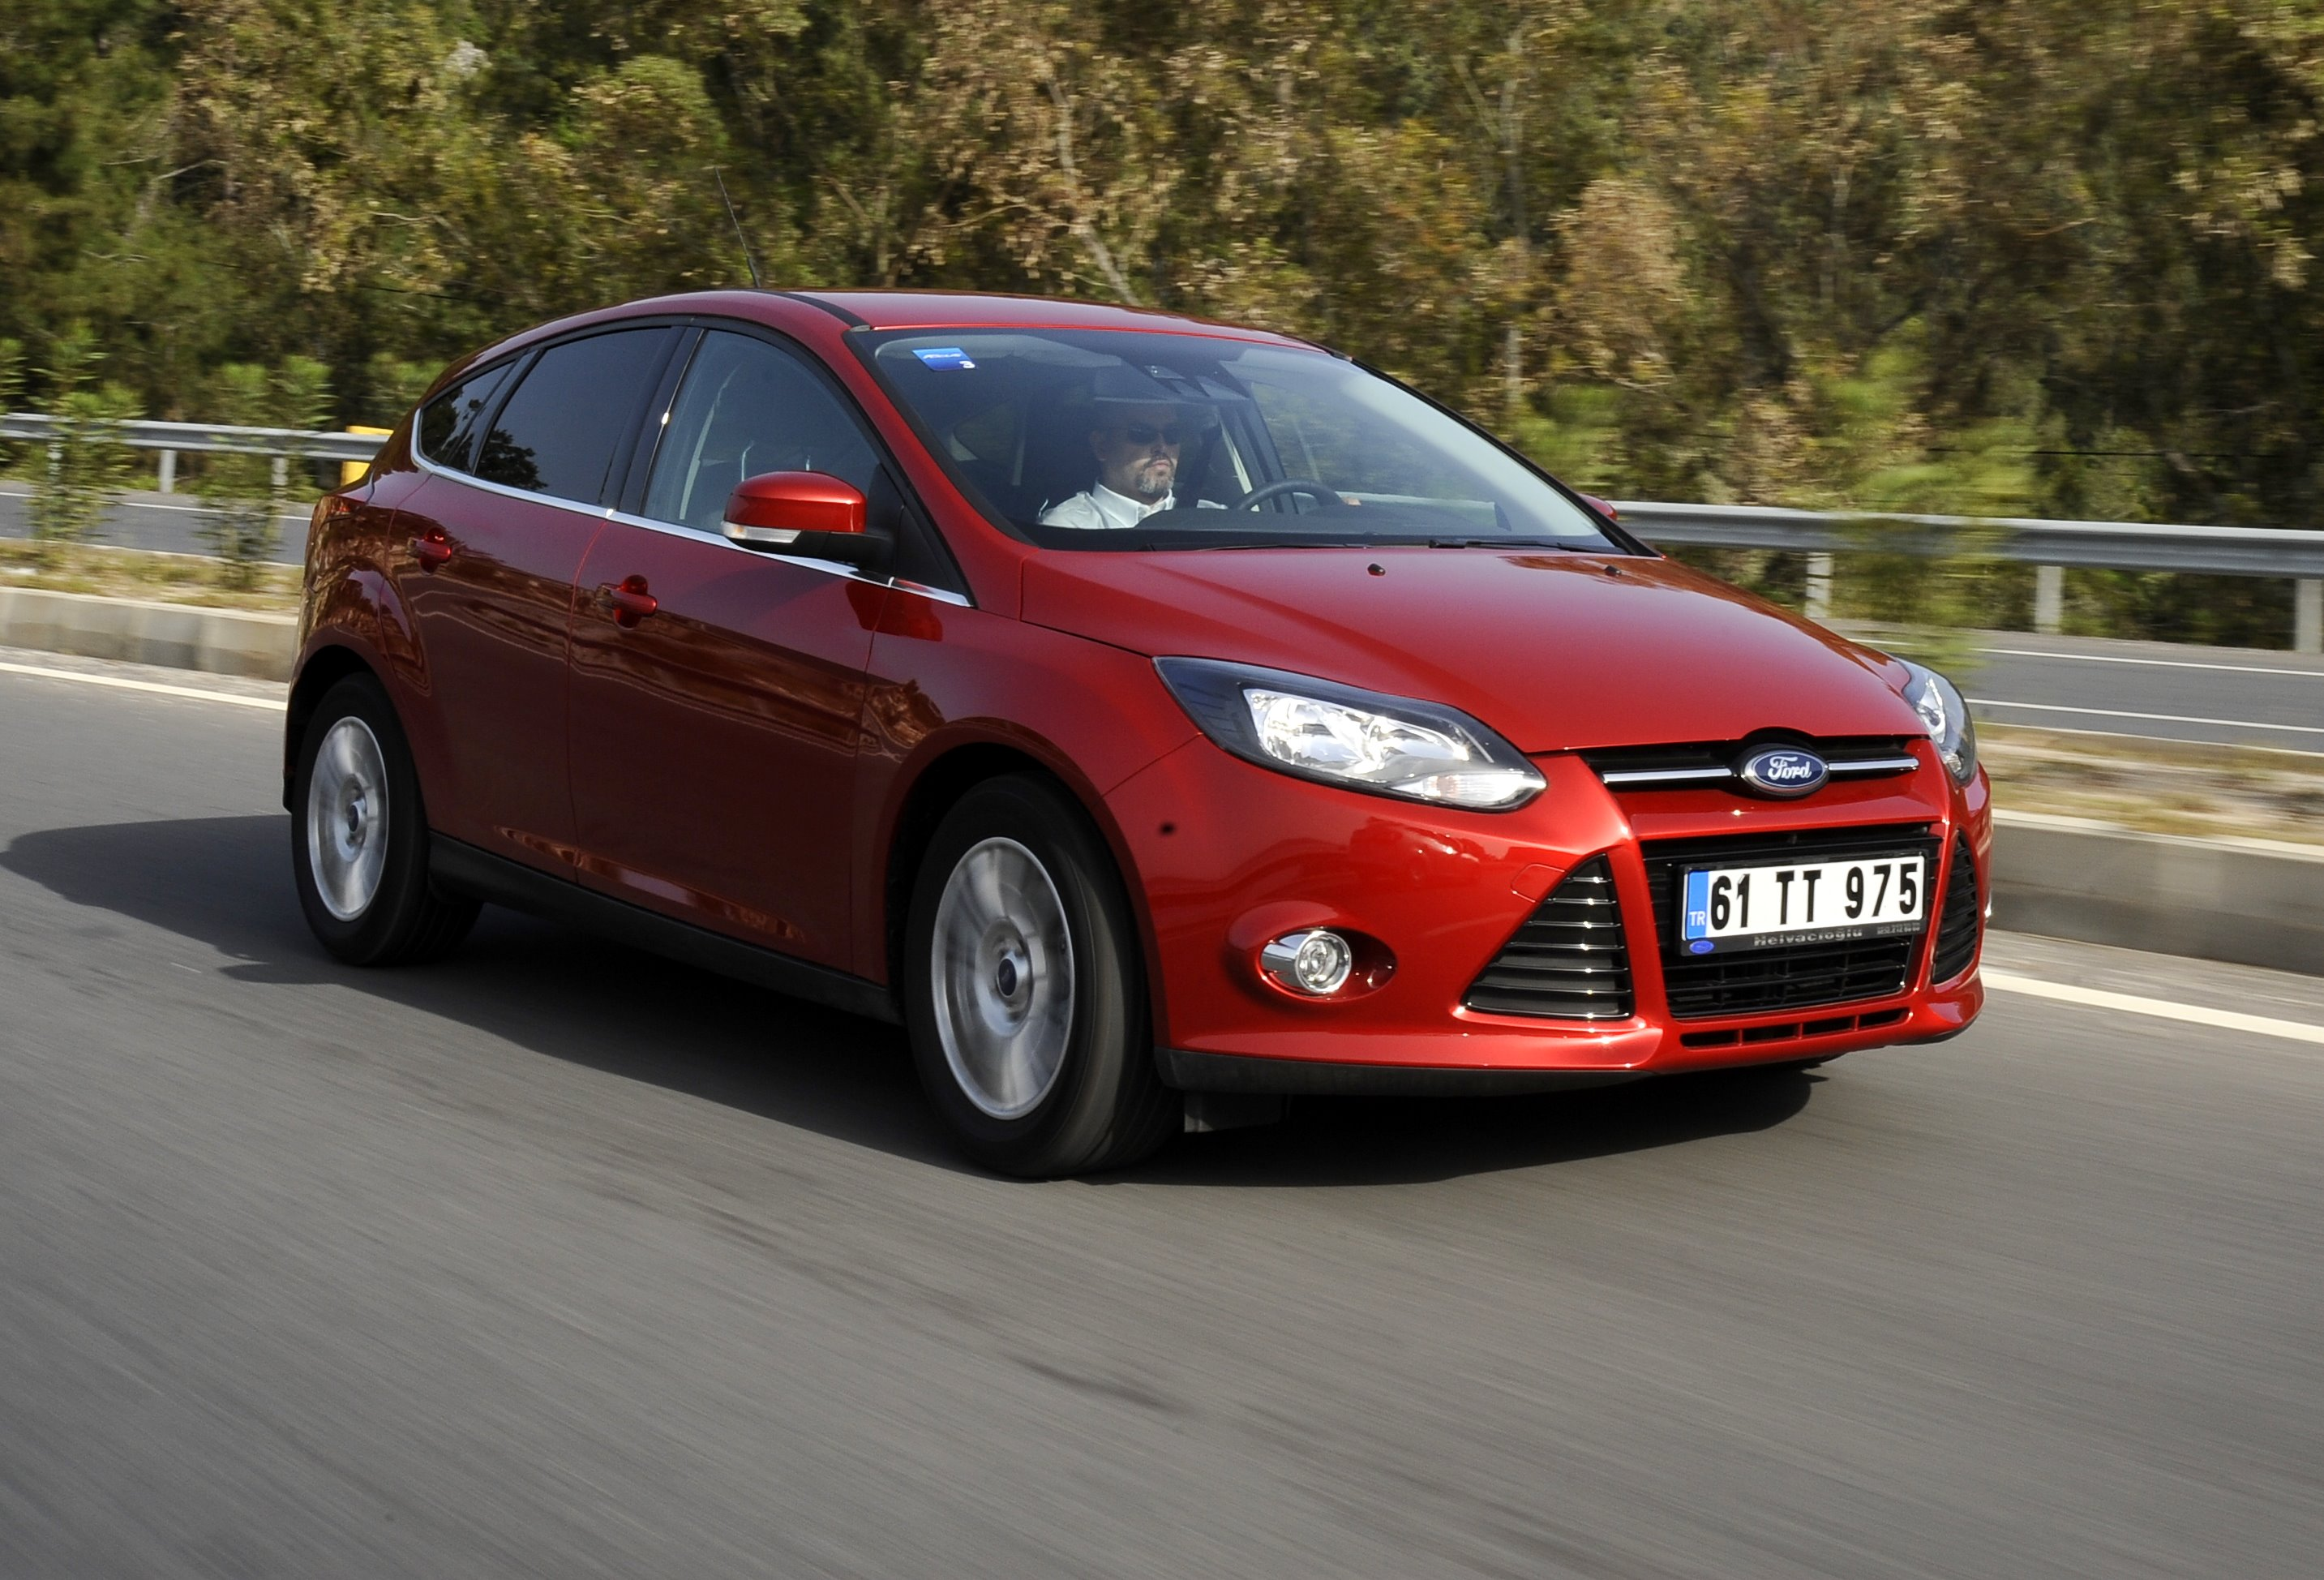 Yeni (2012) Ford Focus 1.6 EcoBoost 180 HP Test